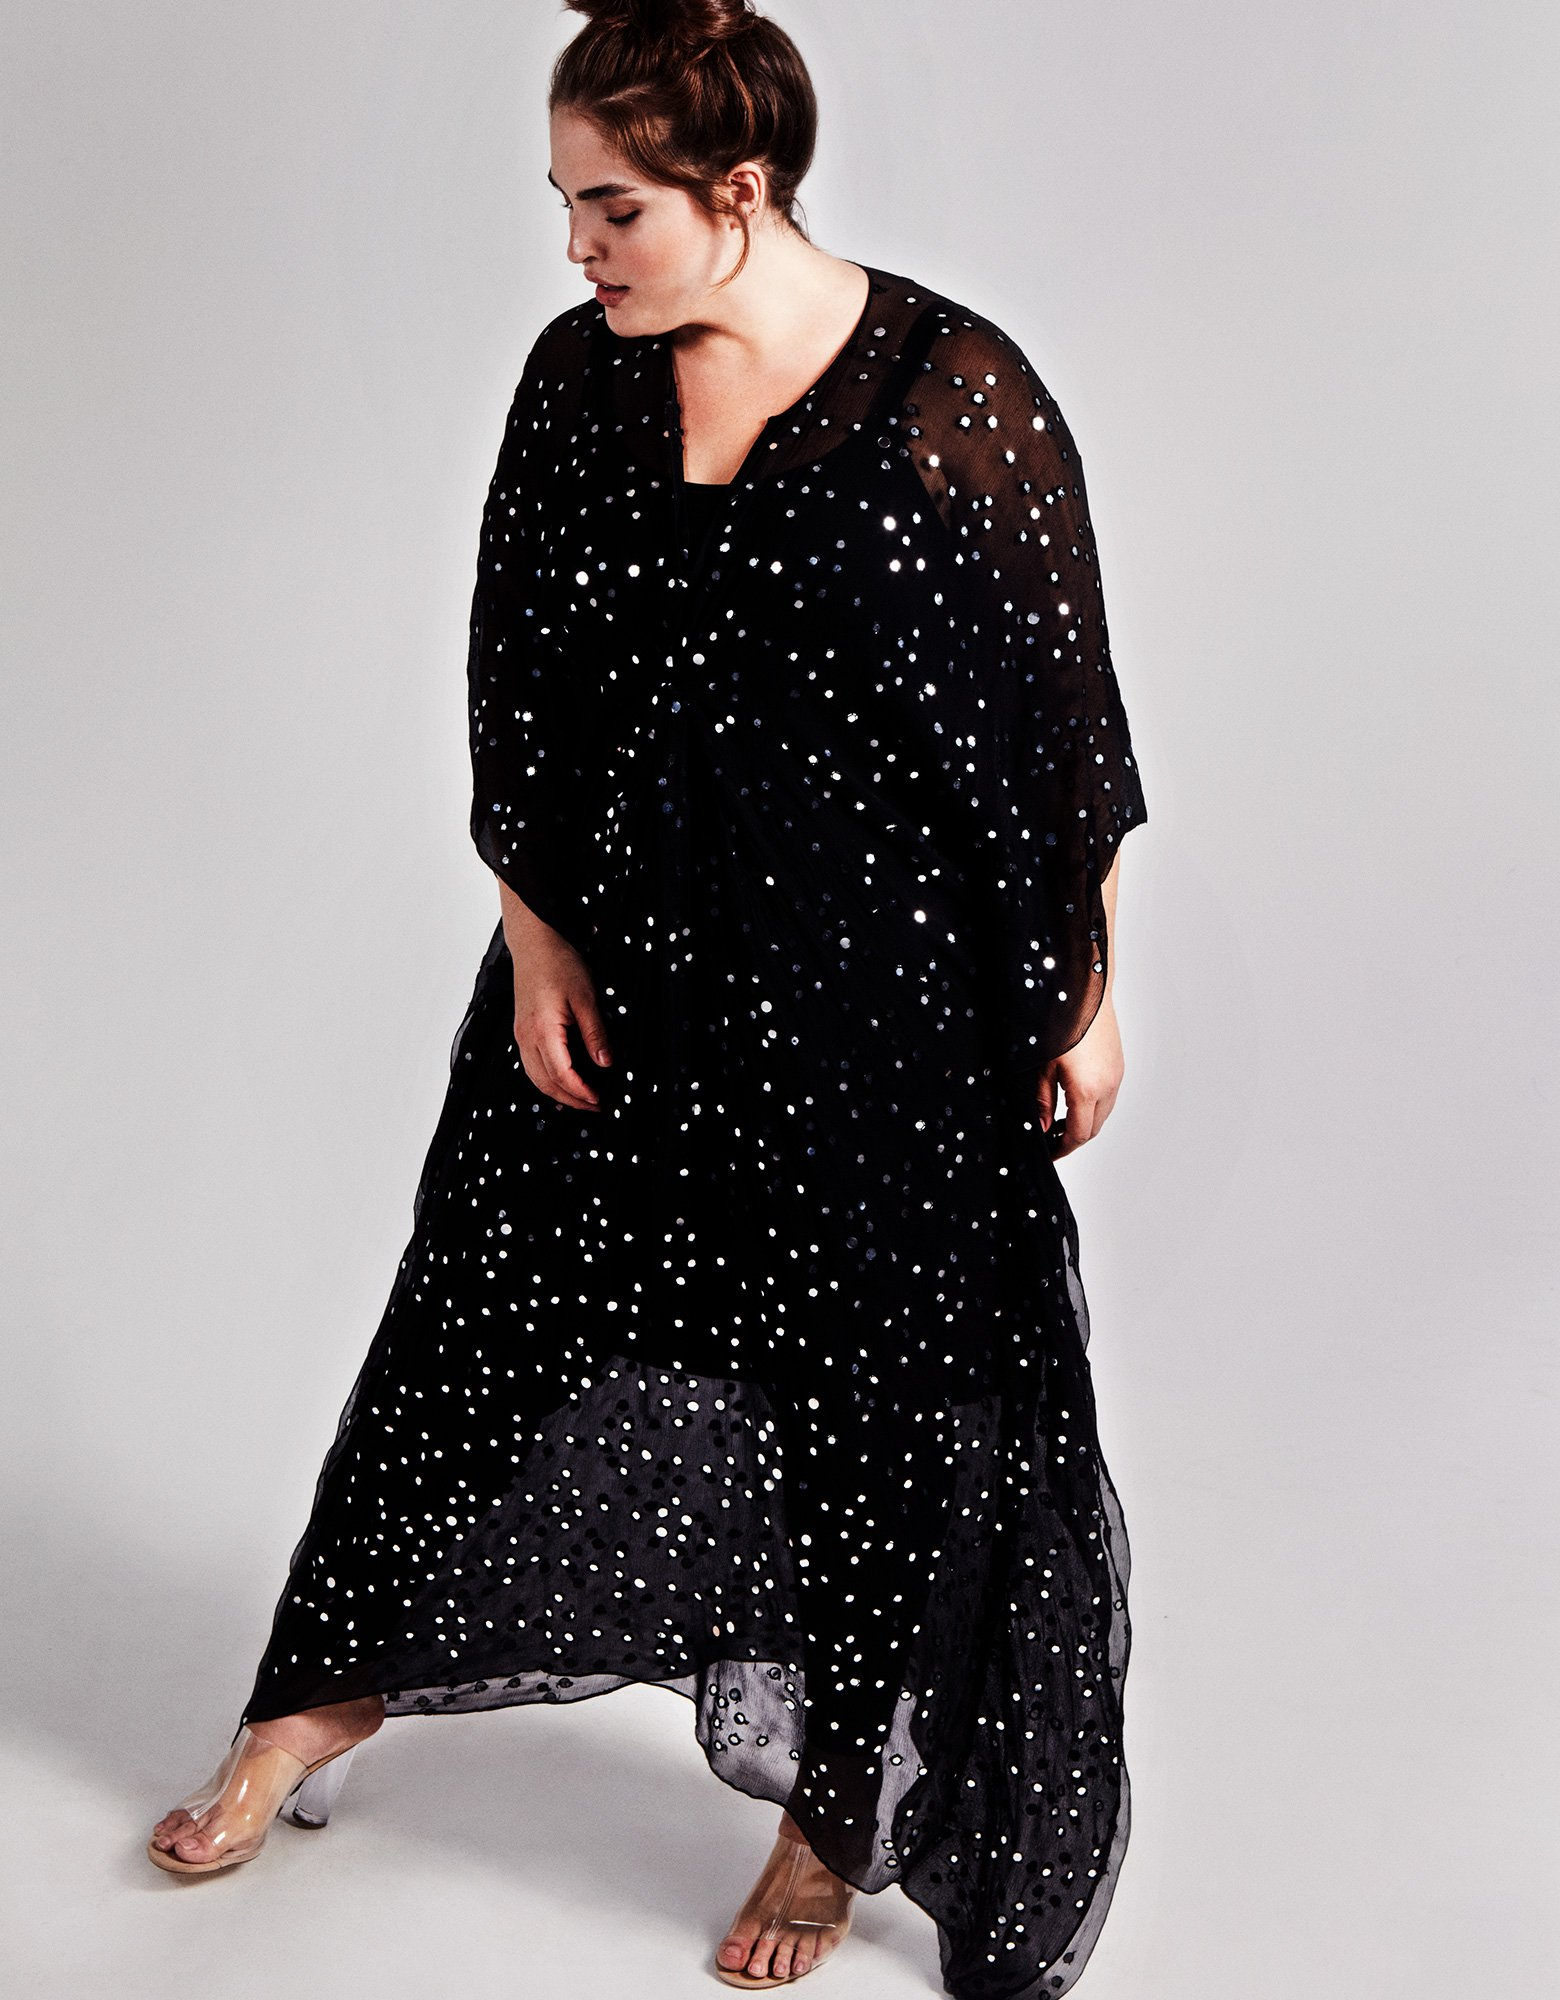 10 Sustainable Plus Size Clothing Brands You Will Actually Want To Wear